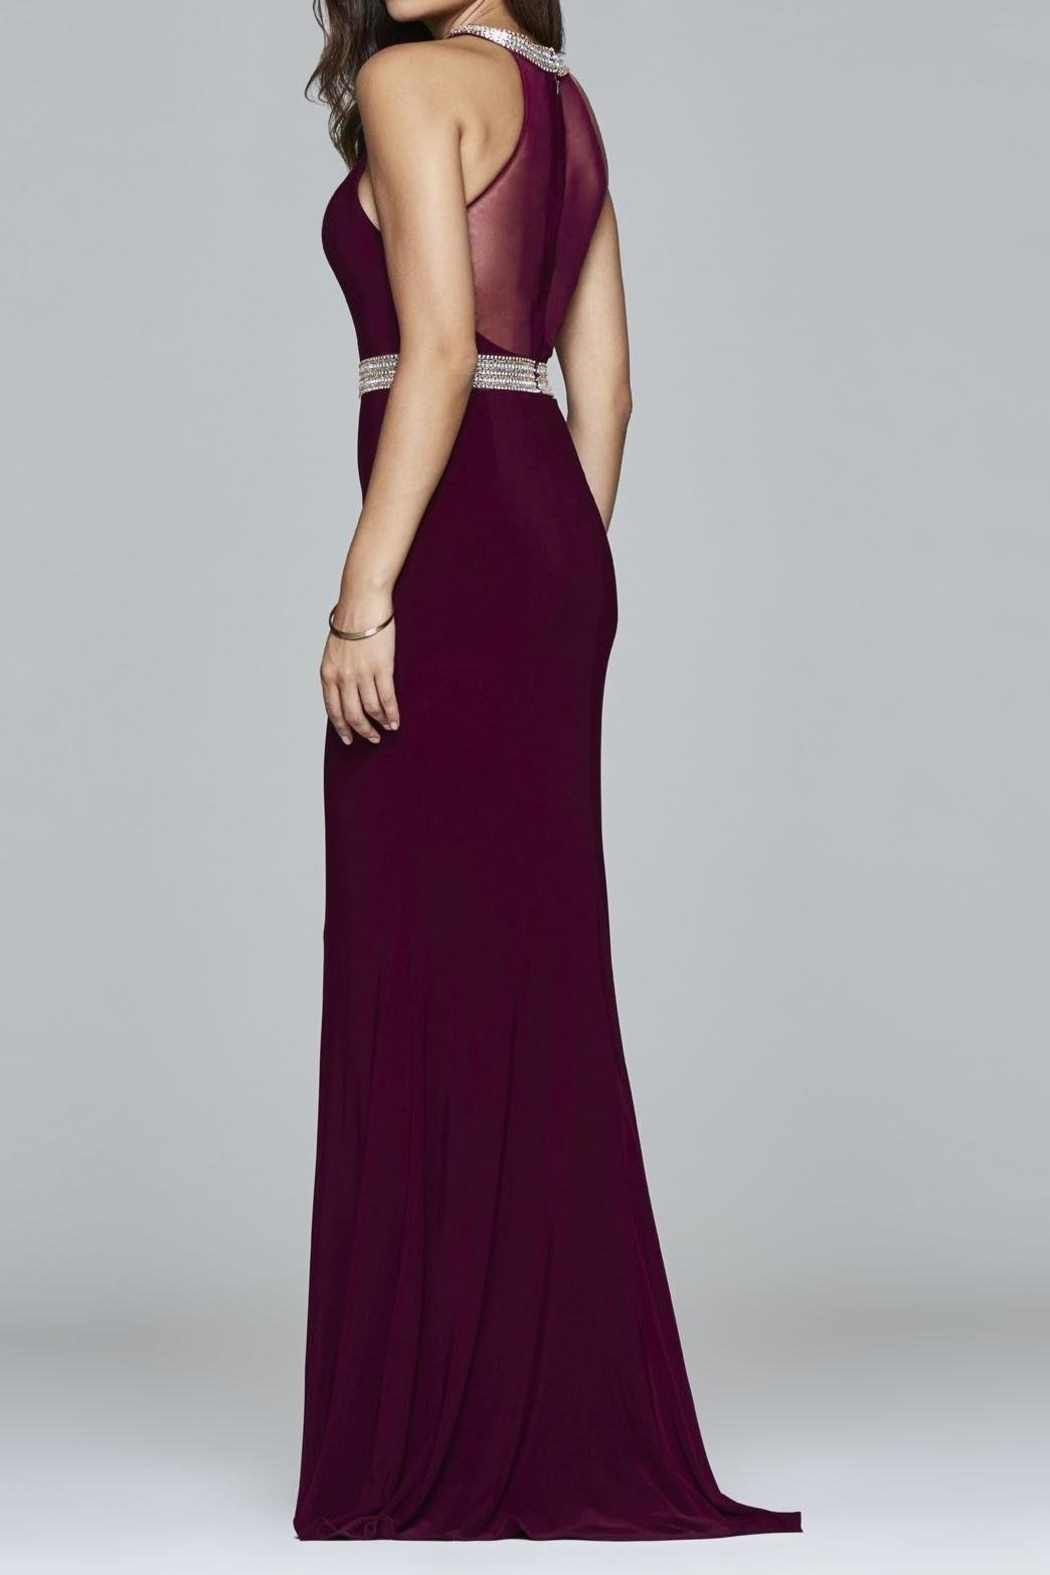 Faviana Timeless Bordeaux Gown - Main Image